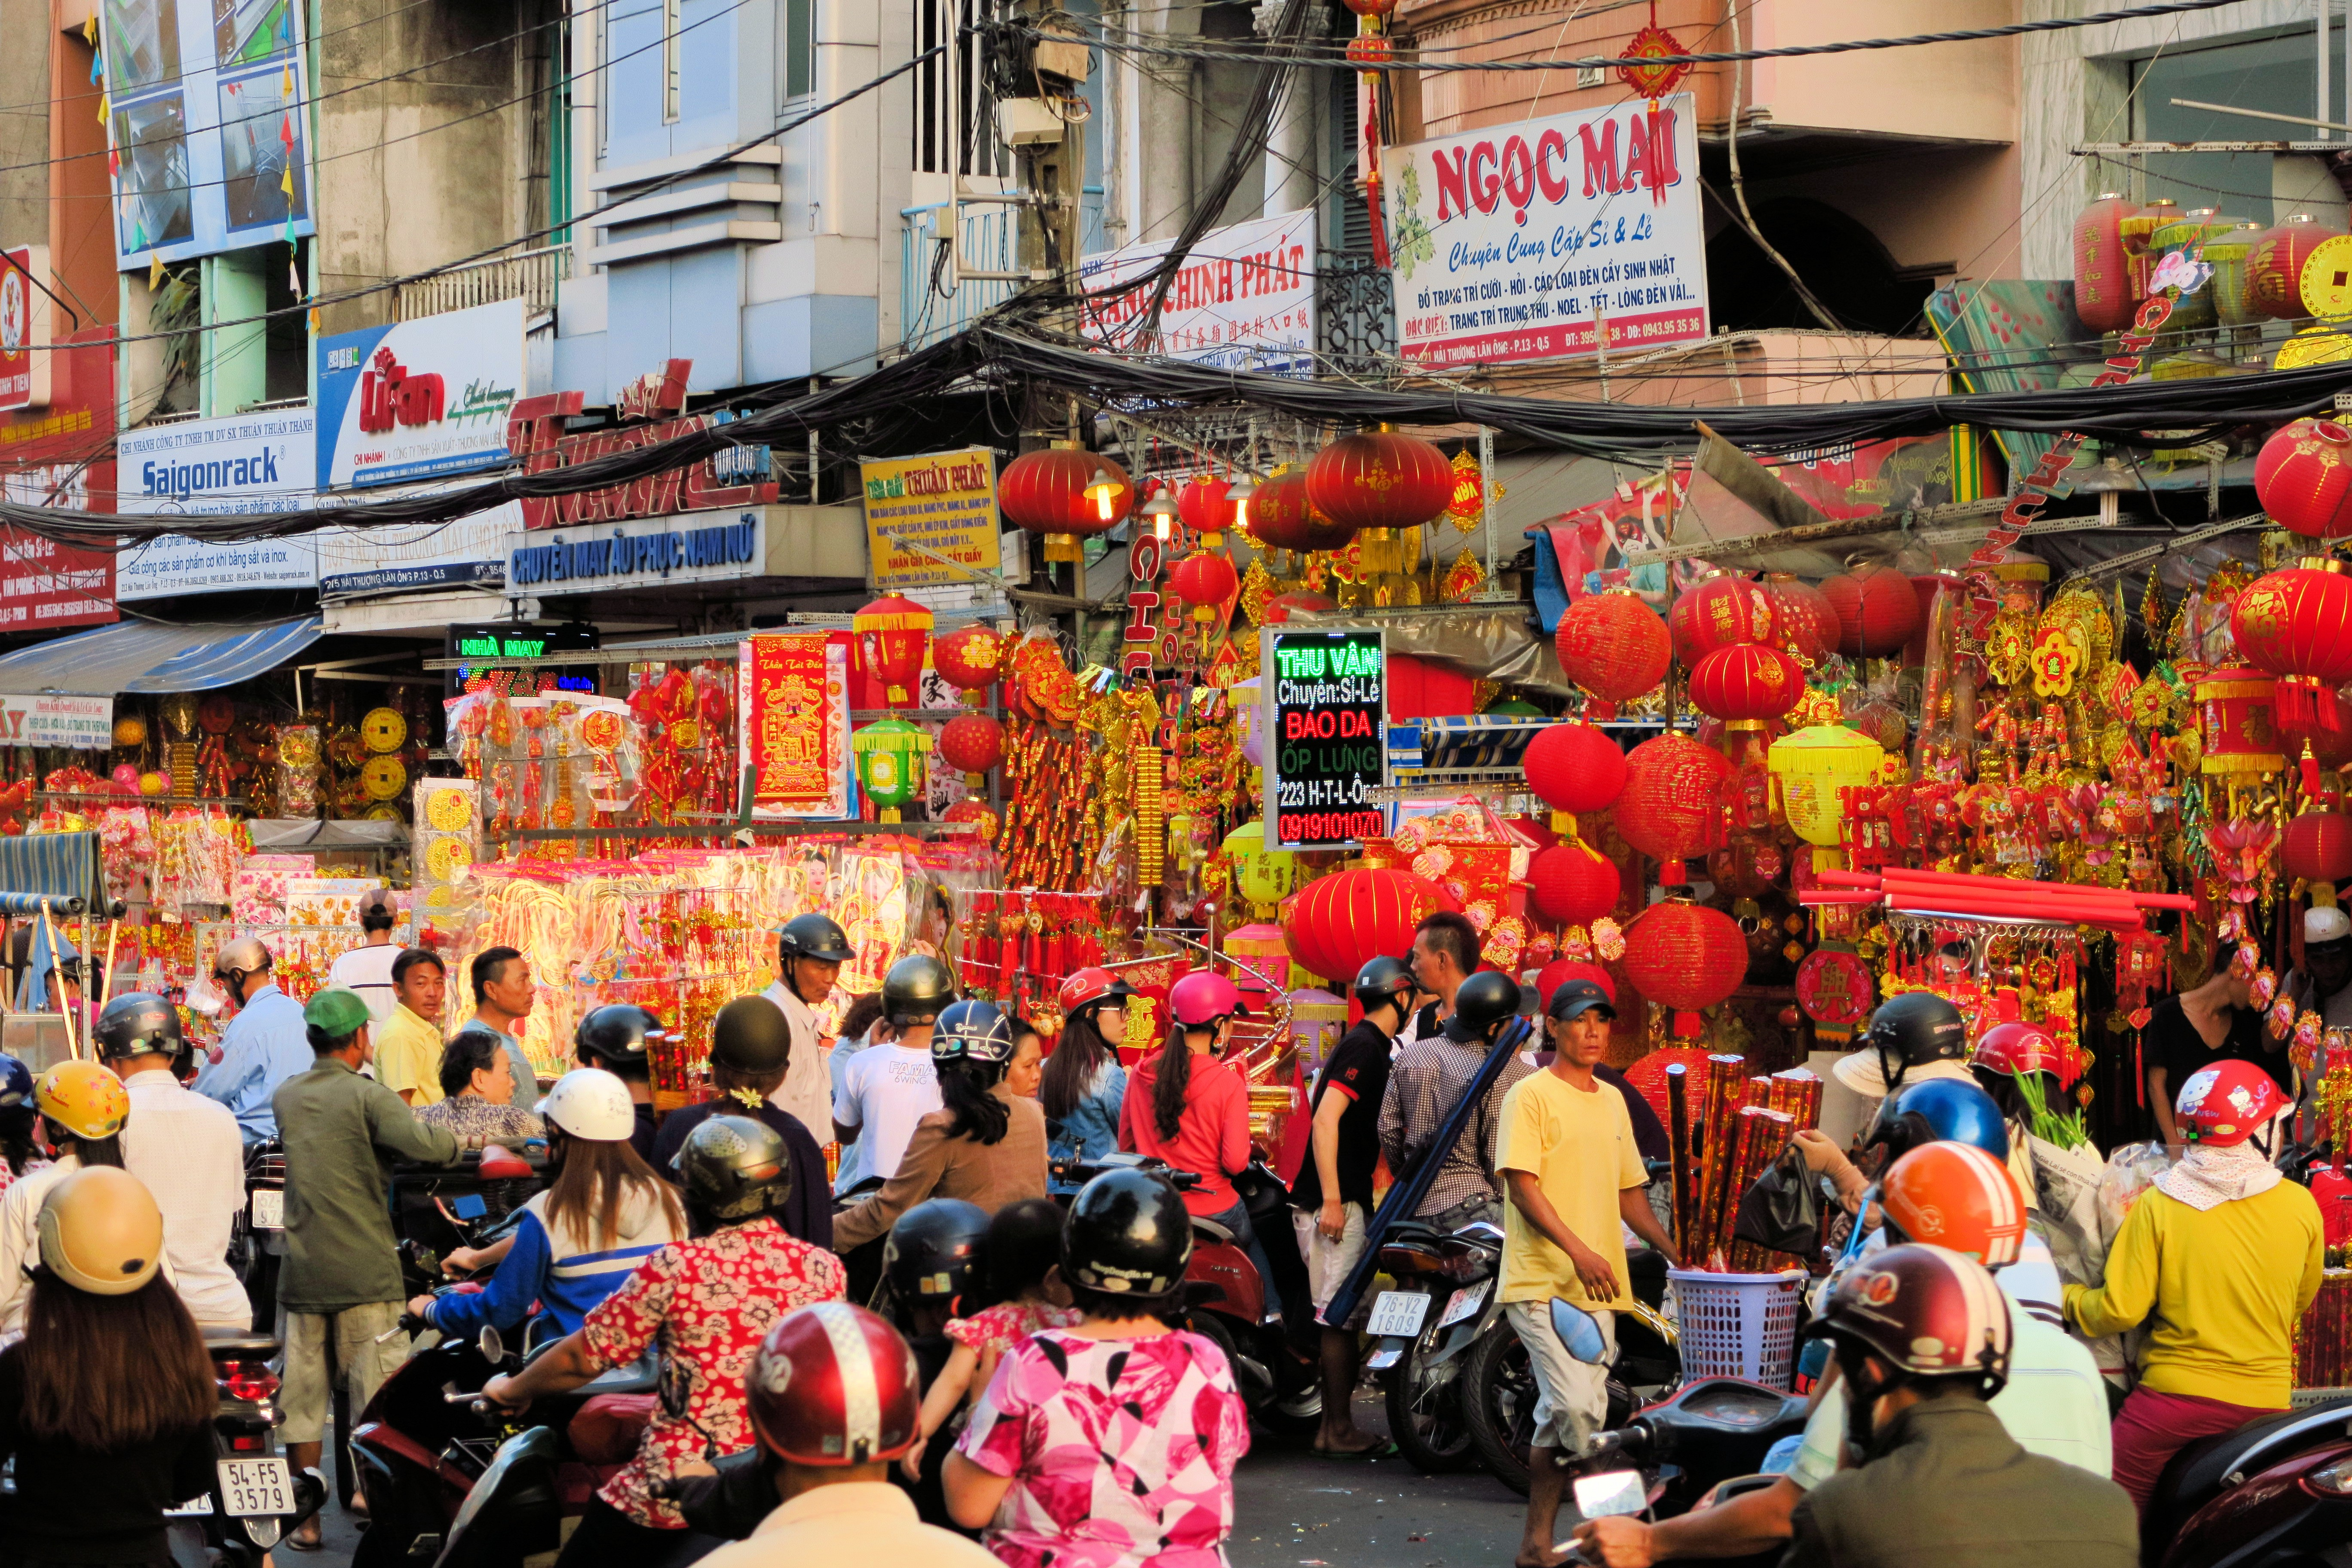 Tet is coming - people shopping to prepare for Tet